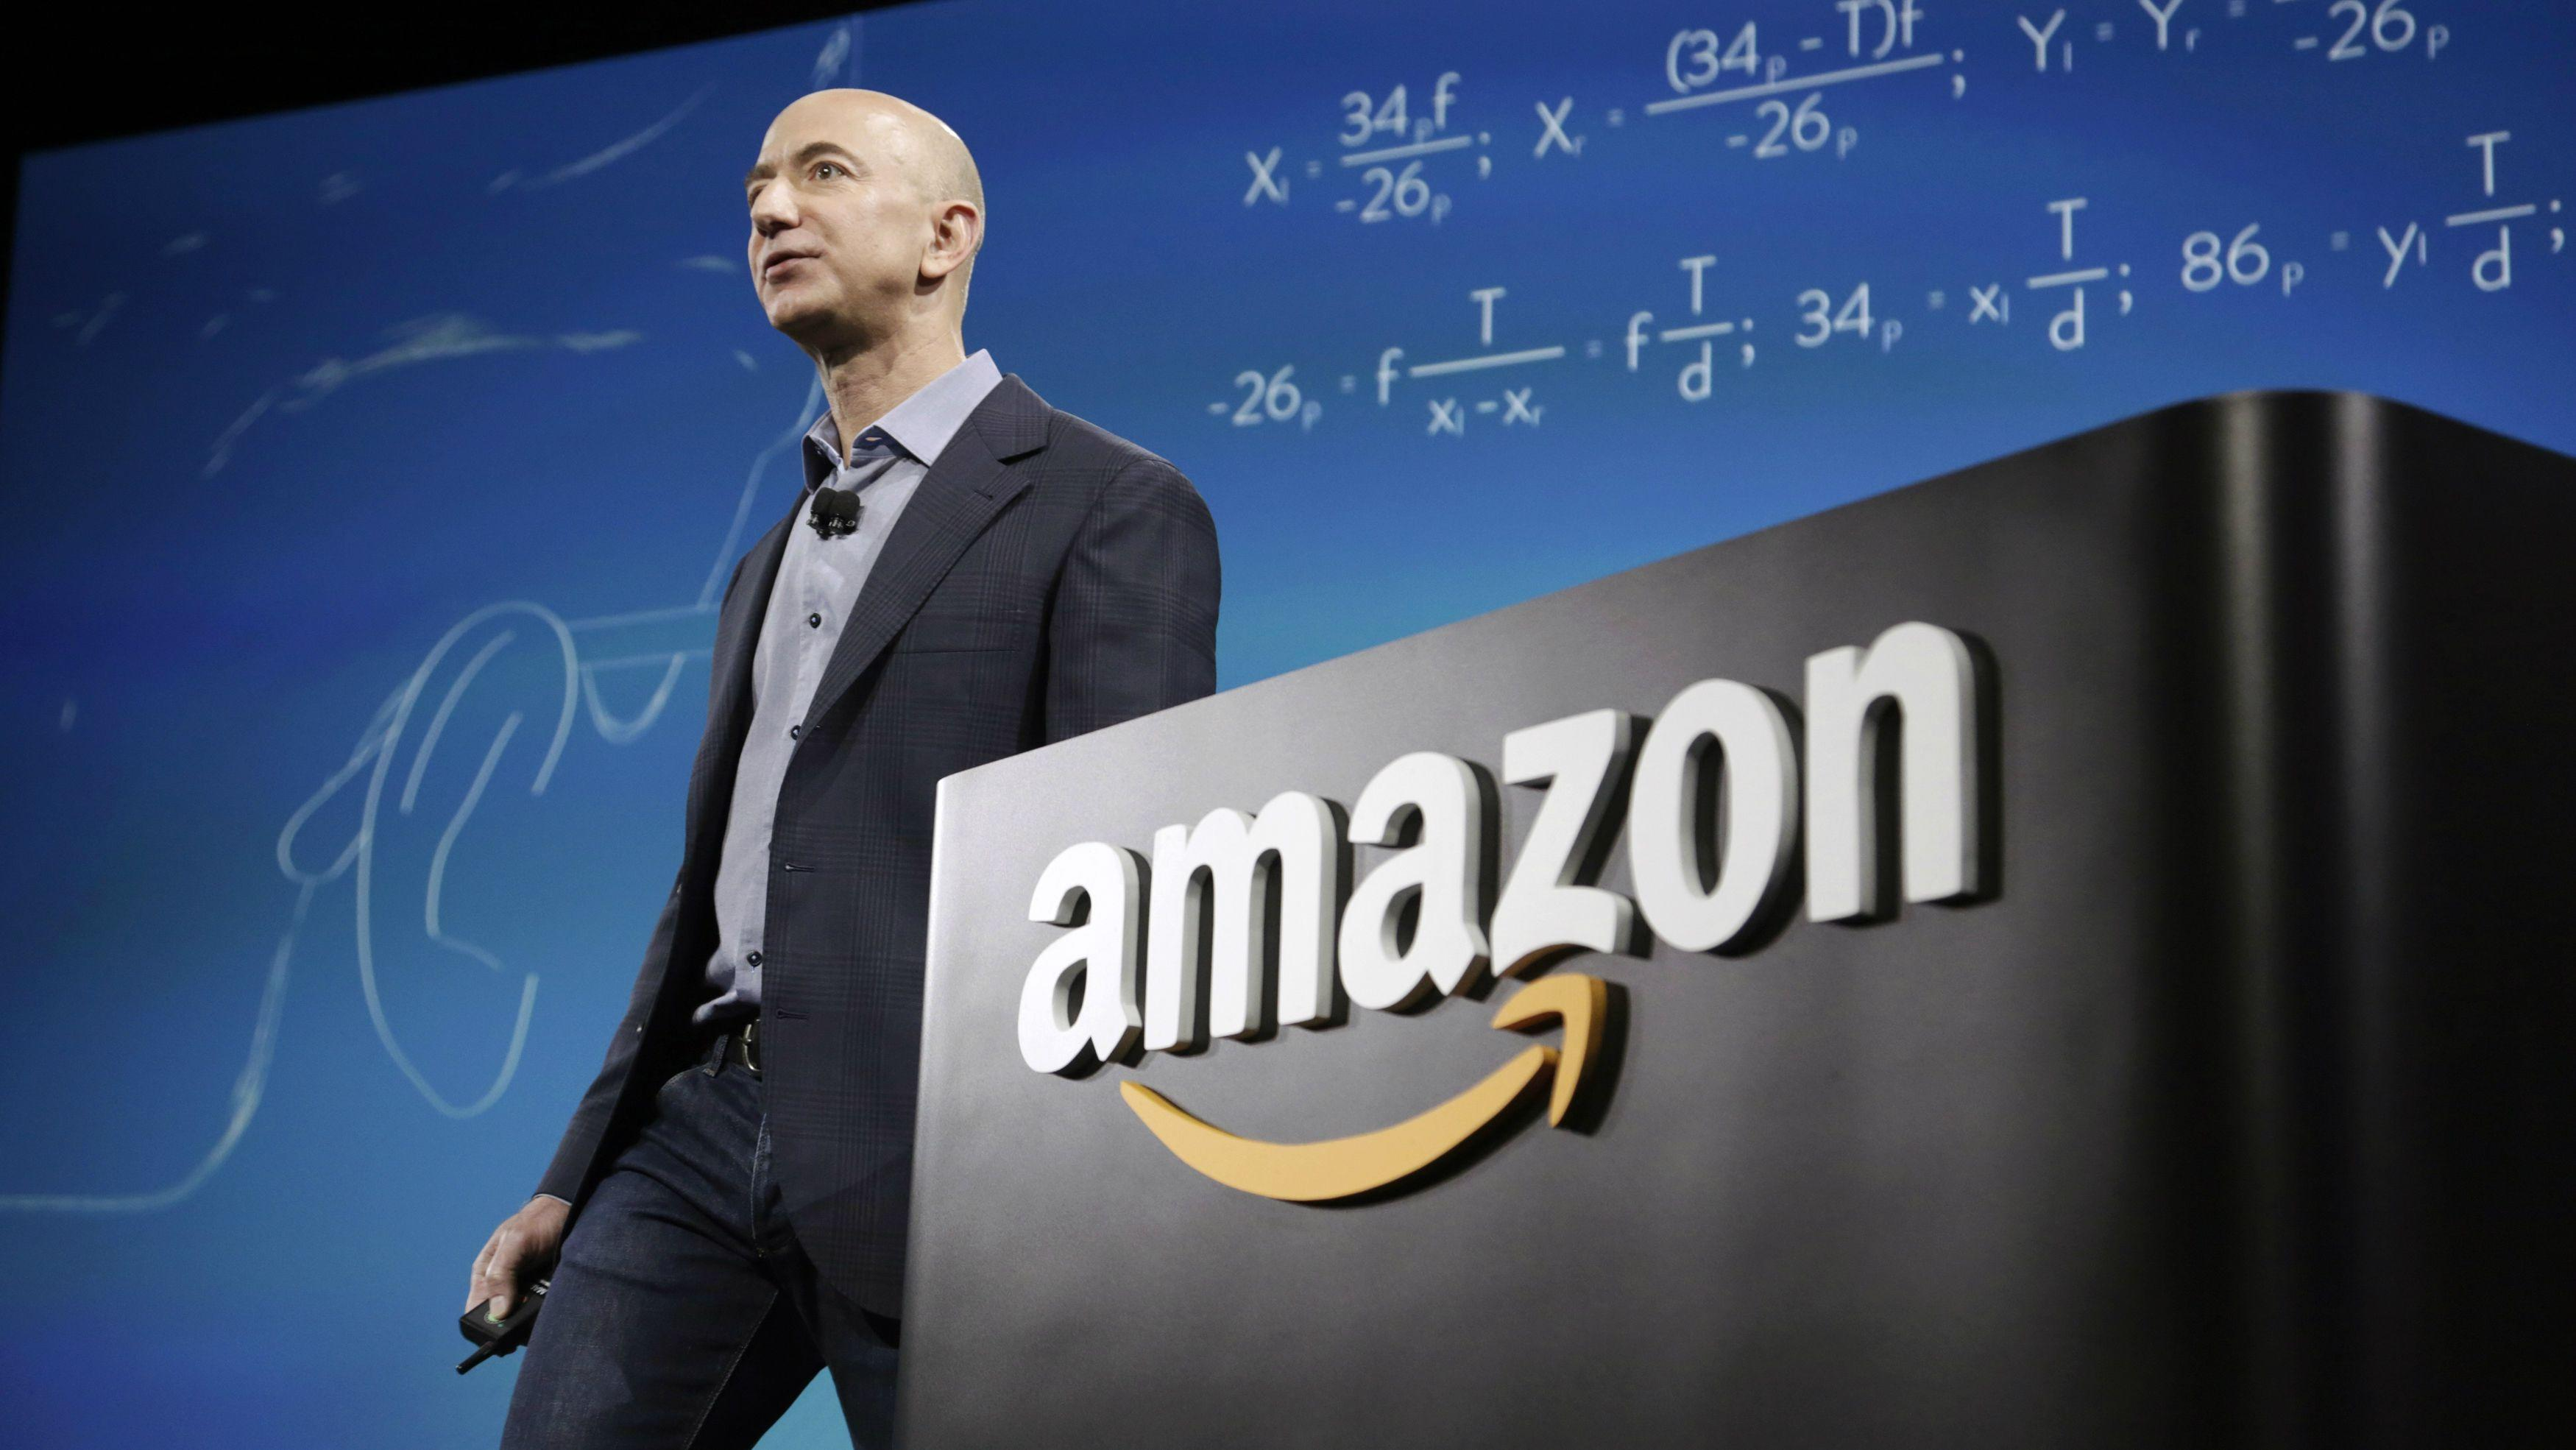 Amazon's foray into supermarkets is a primer for grocery disruption